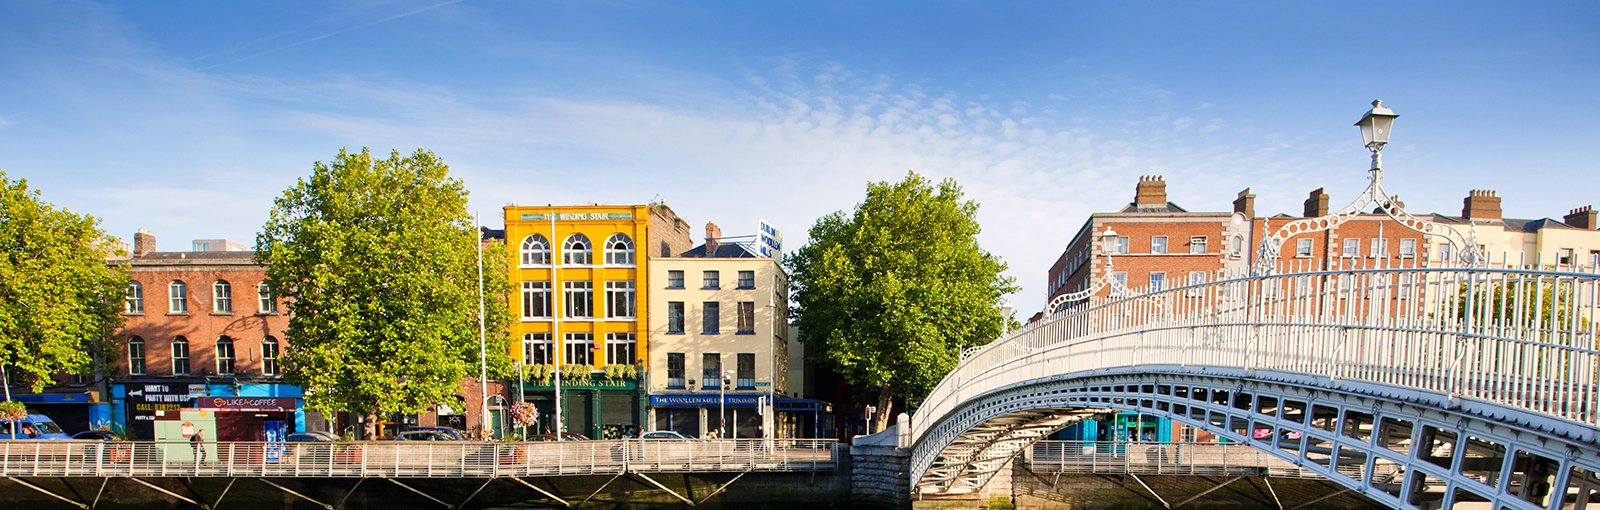 Dublin Data Centers & Colocation